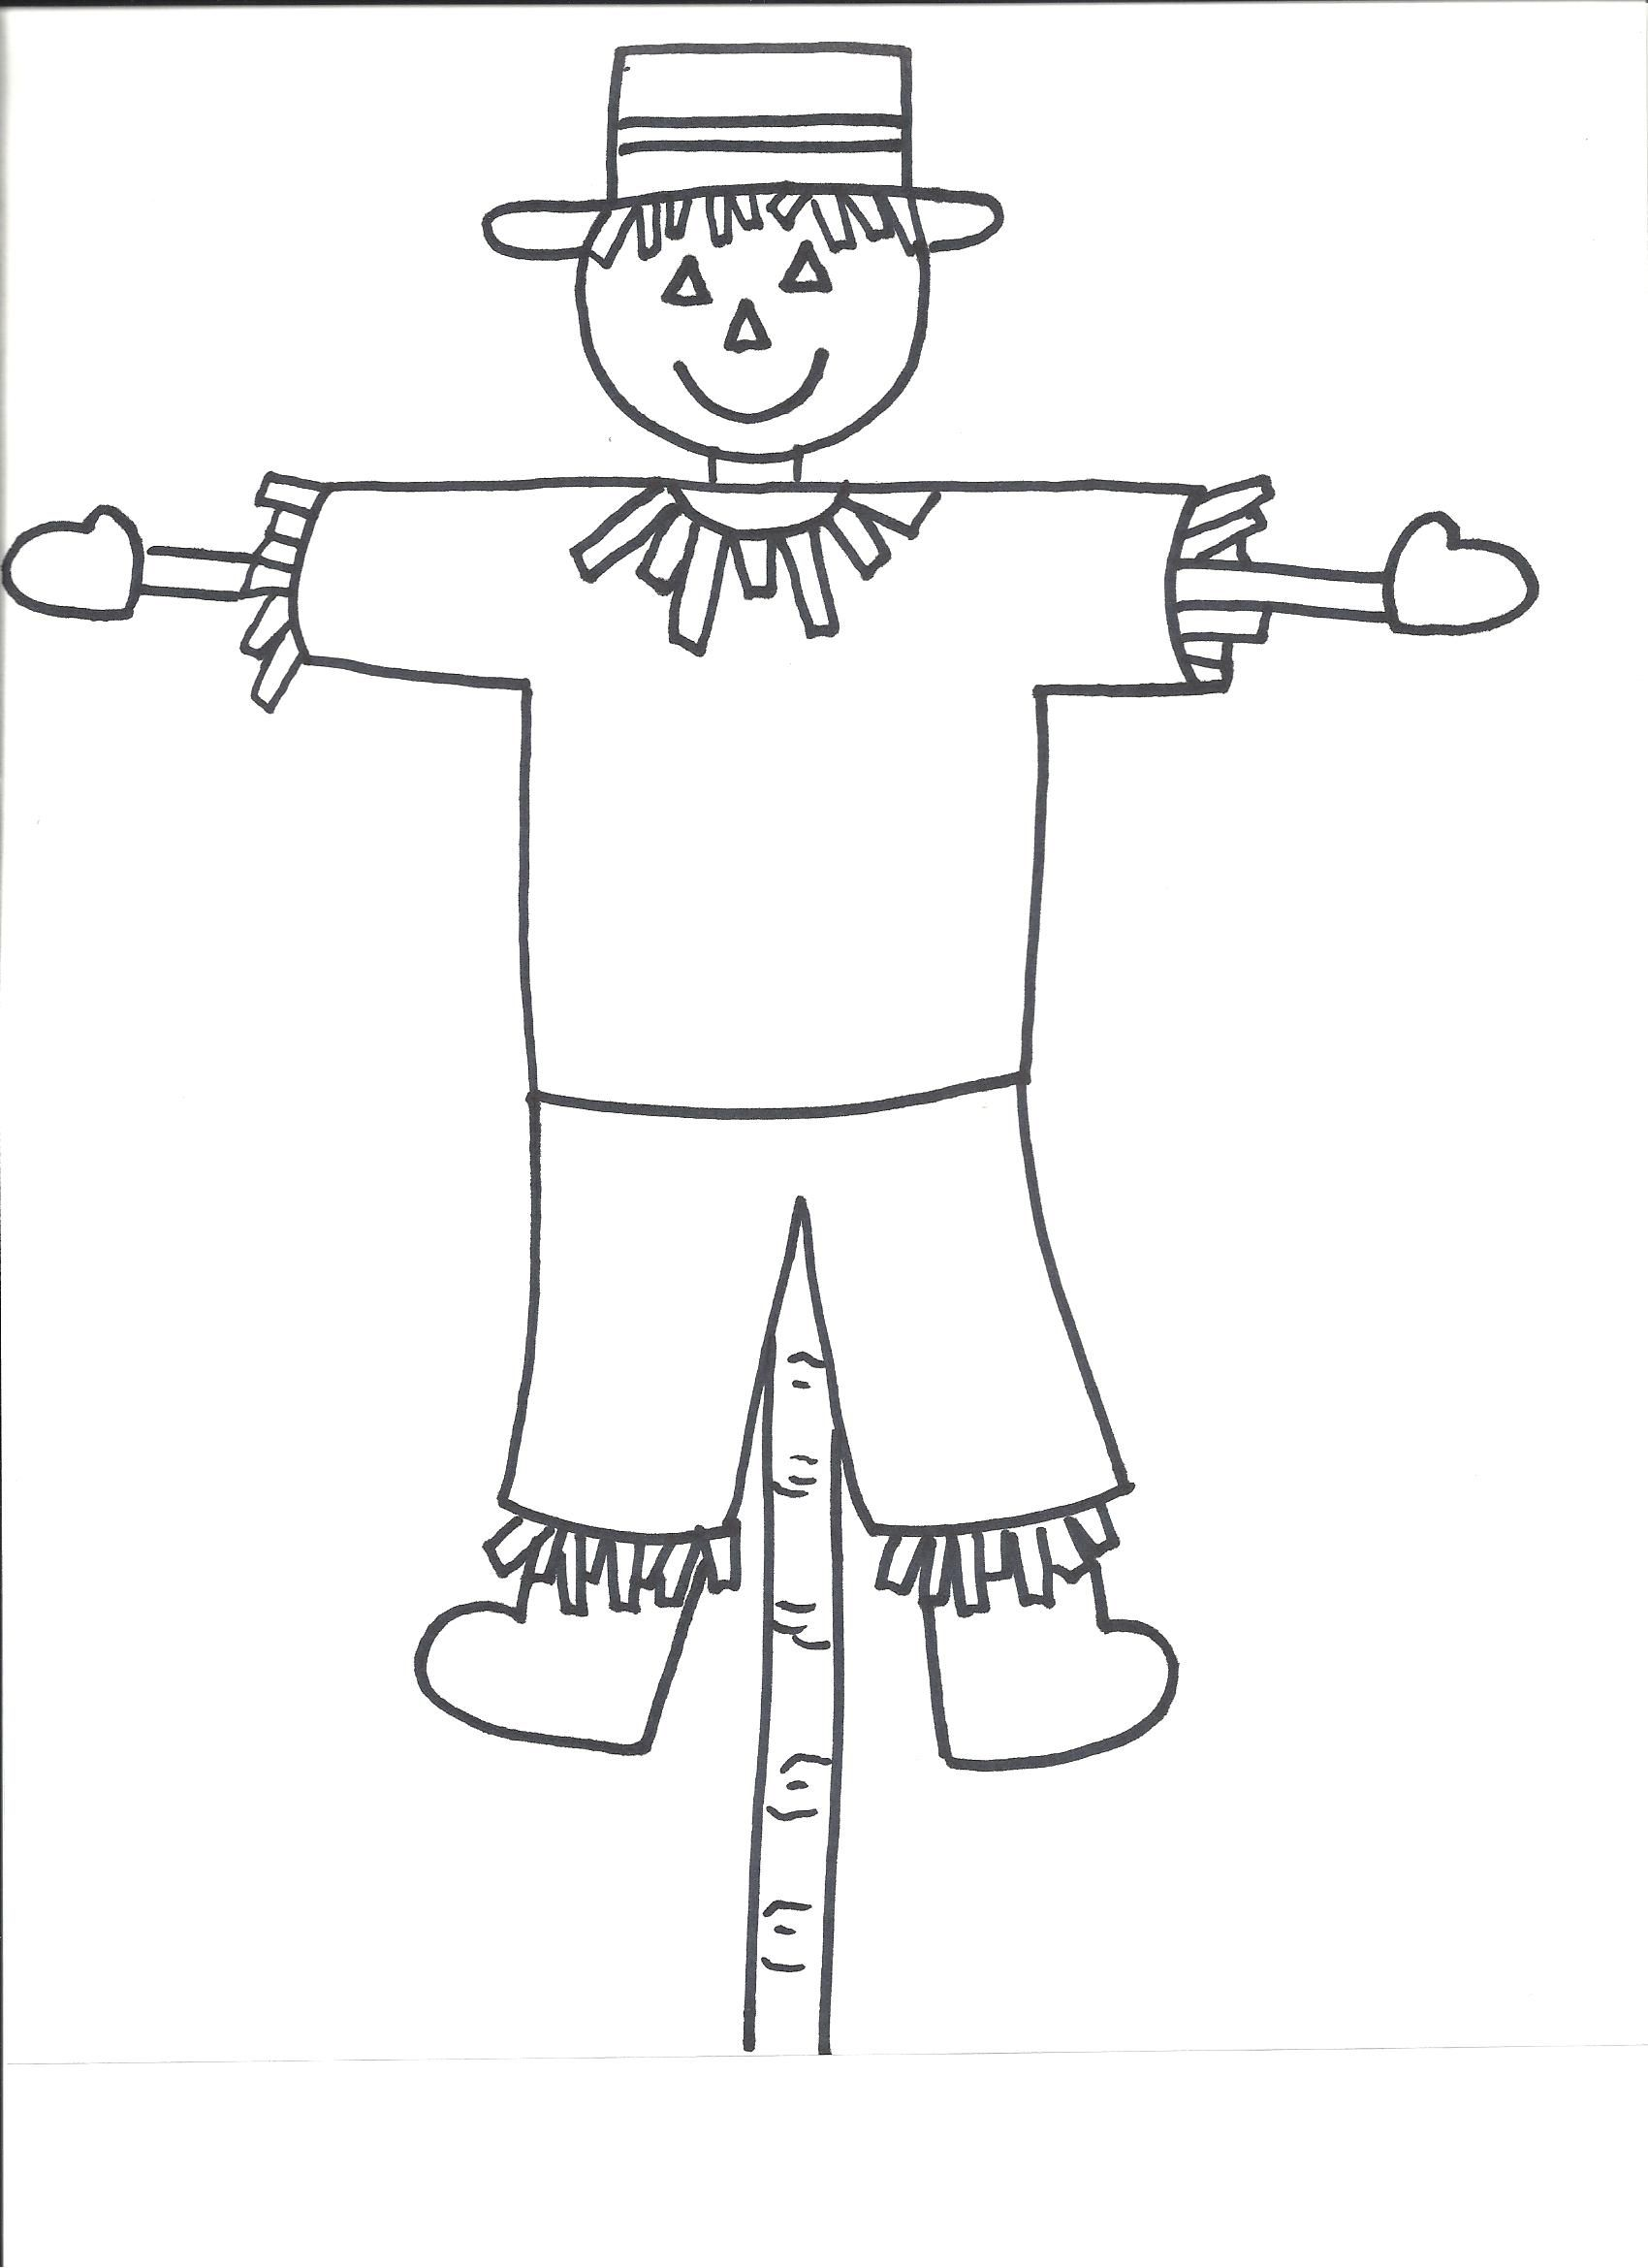 Scarecrow template templates crafts for preschool kids art scarecrow template templates crafts for preschool kids pronofoot35fo Choice Image